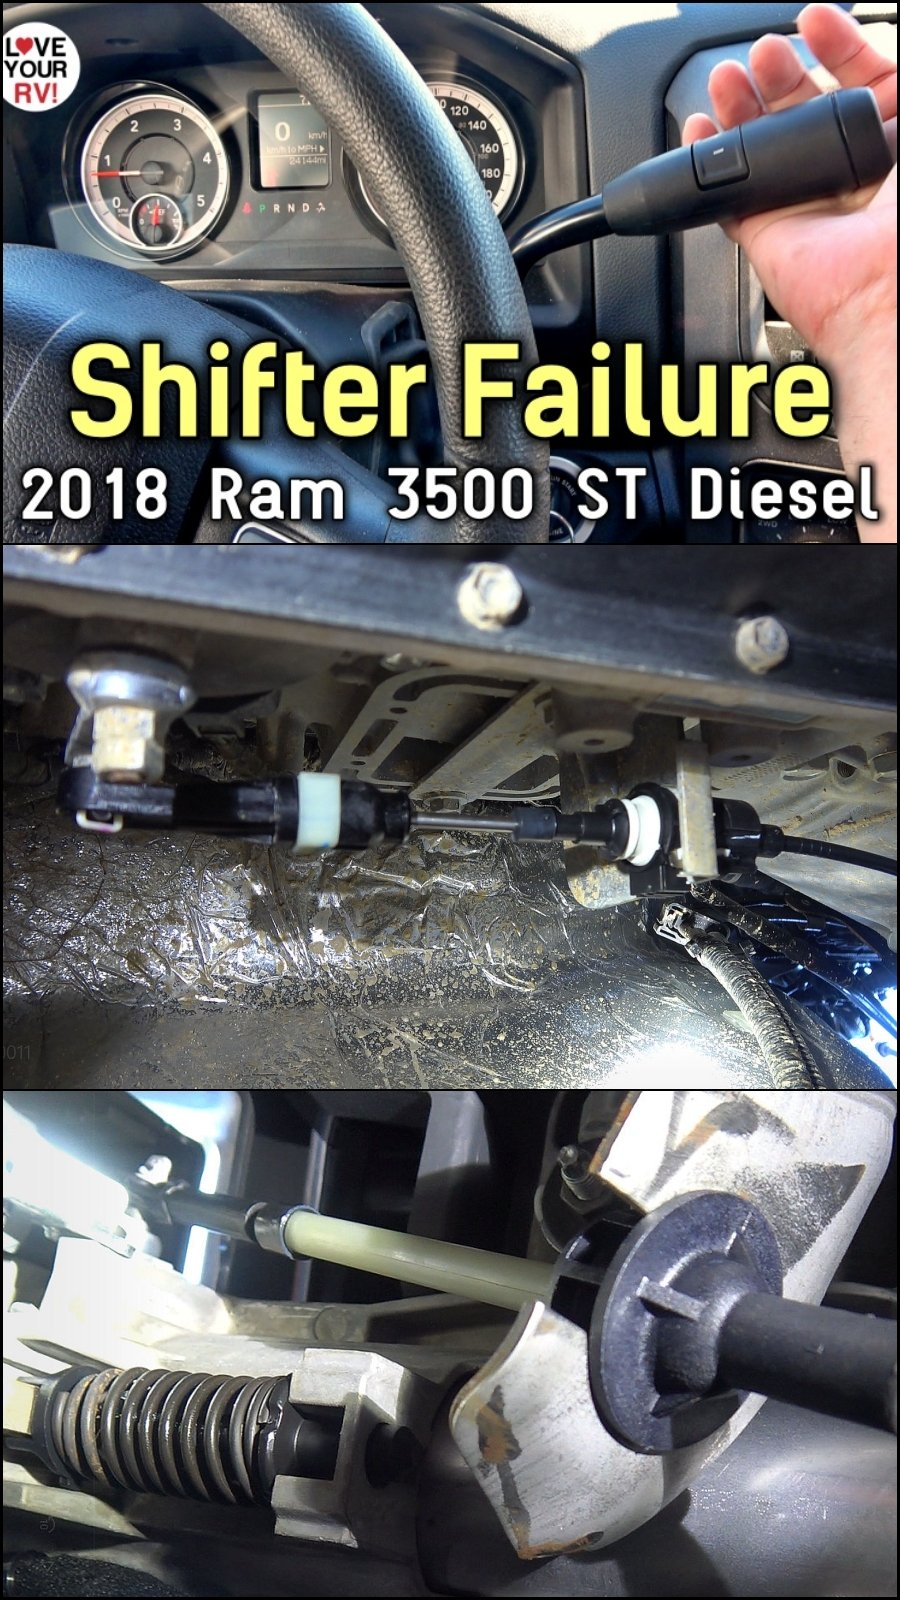 Shifter Cable Failure on Ram 2018 ST 3500 Cummins Pickup Truck